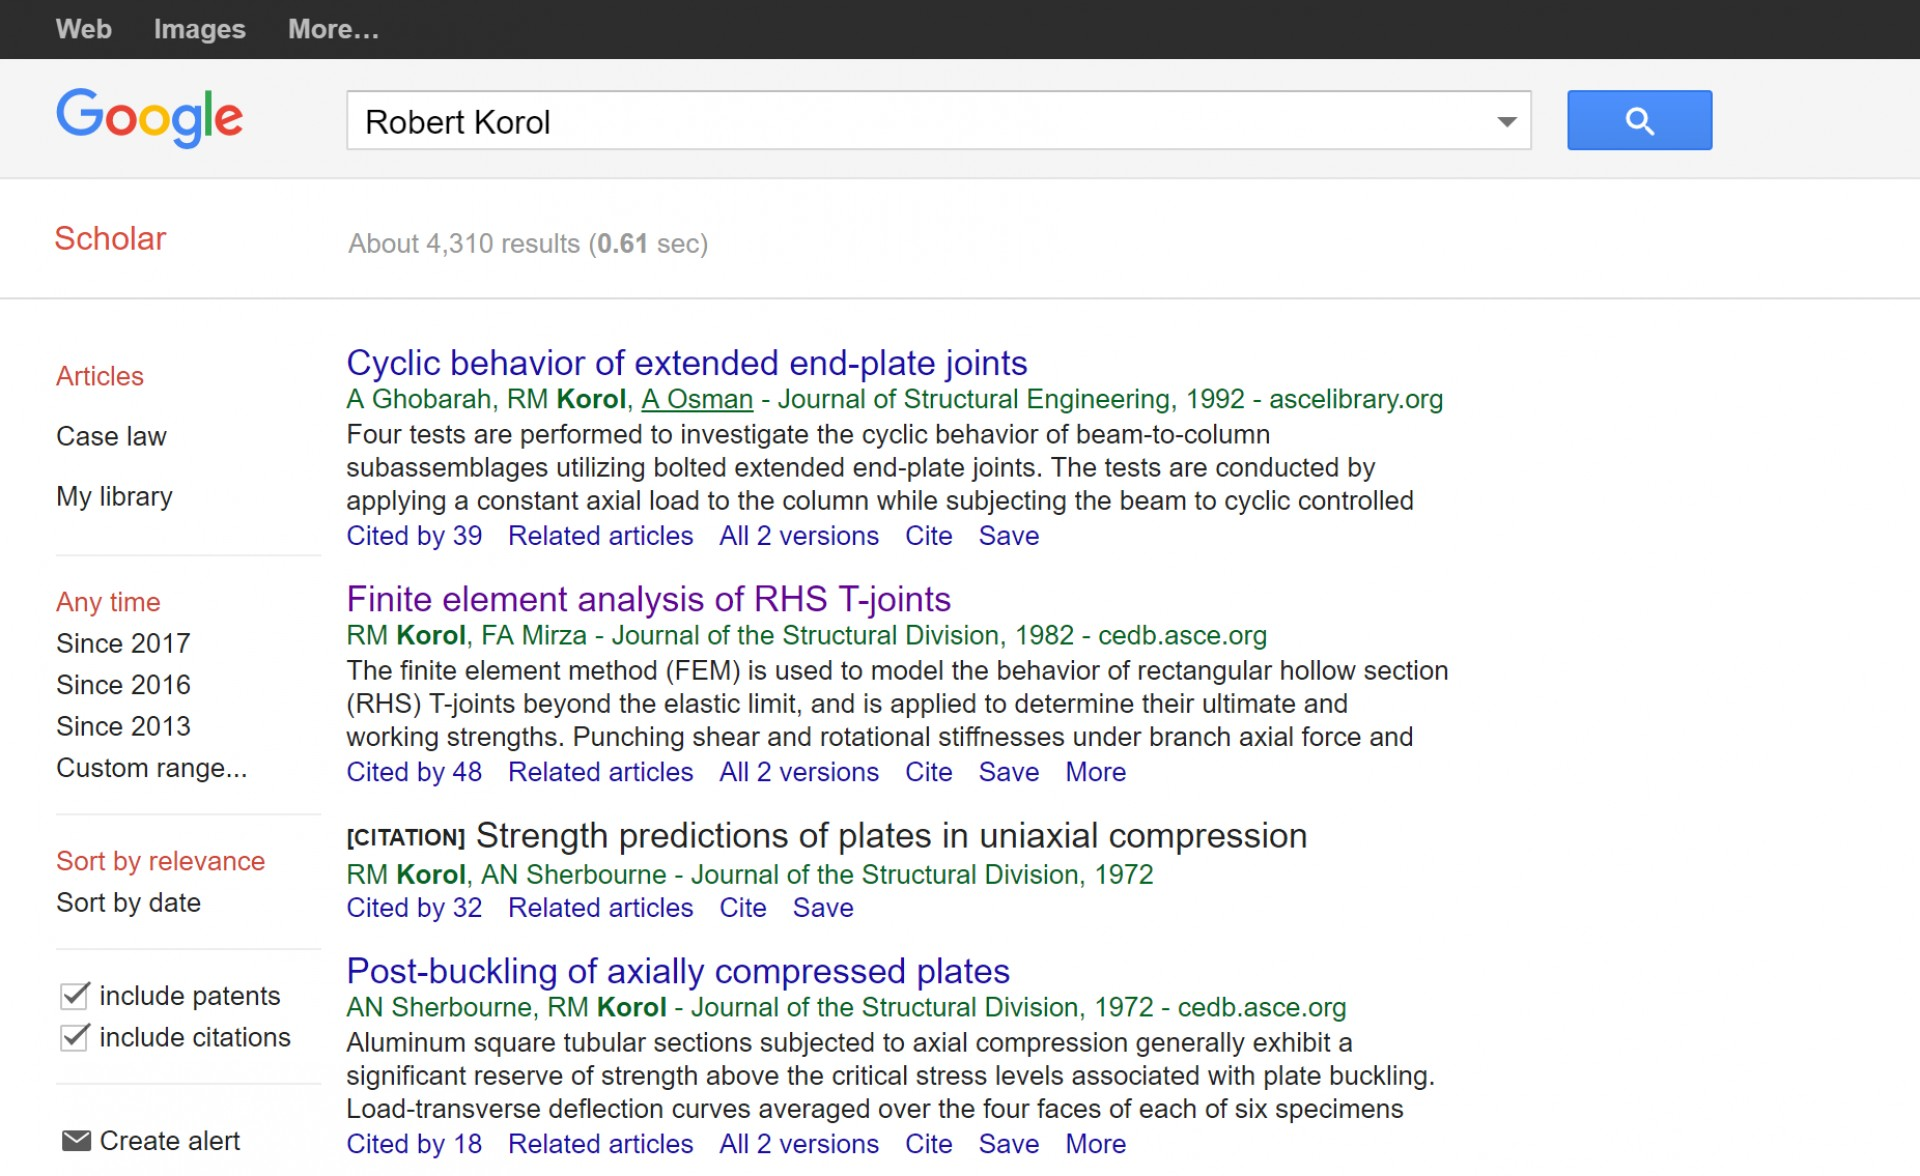 007 How To Publish Research Paper On Google Scholar Dreaded 1920